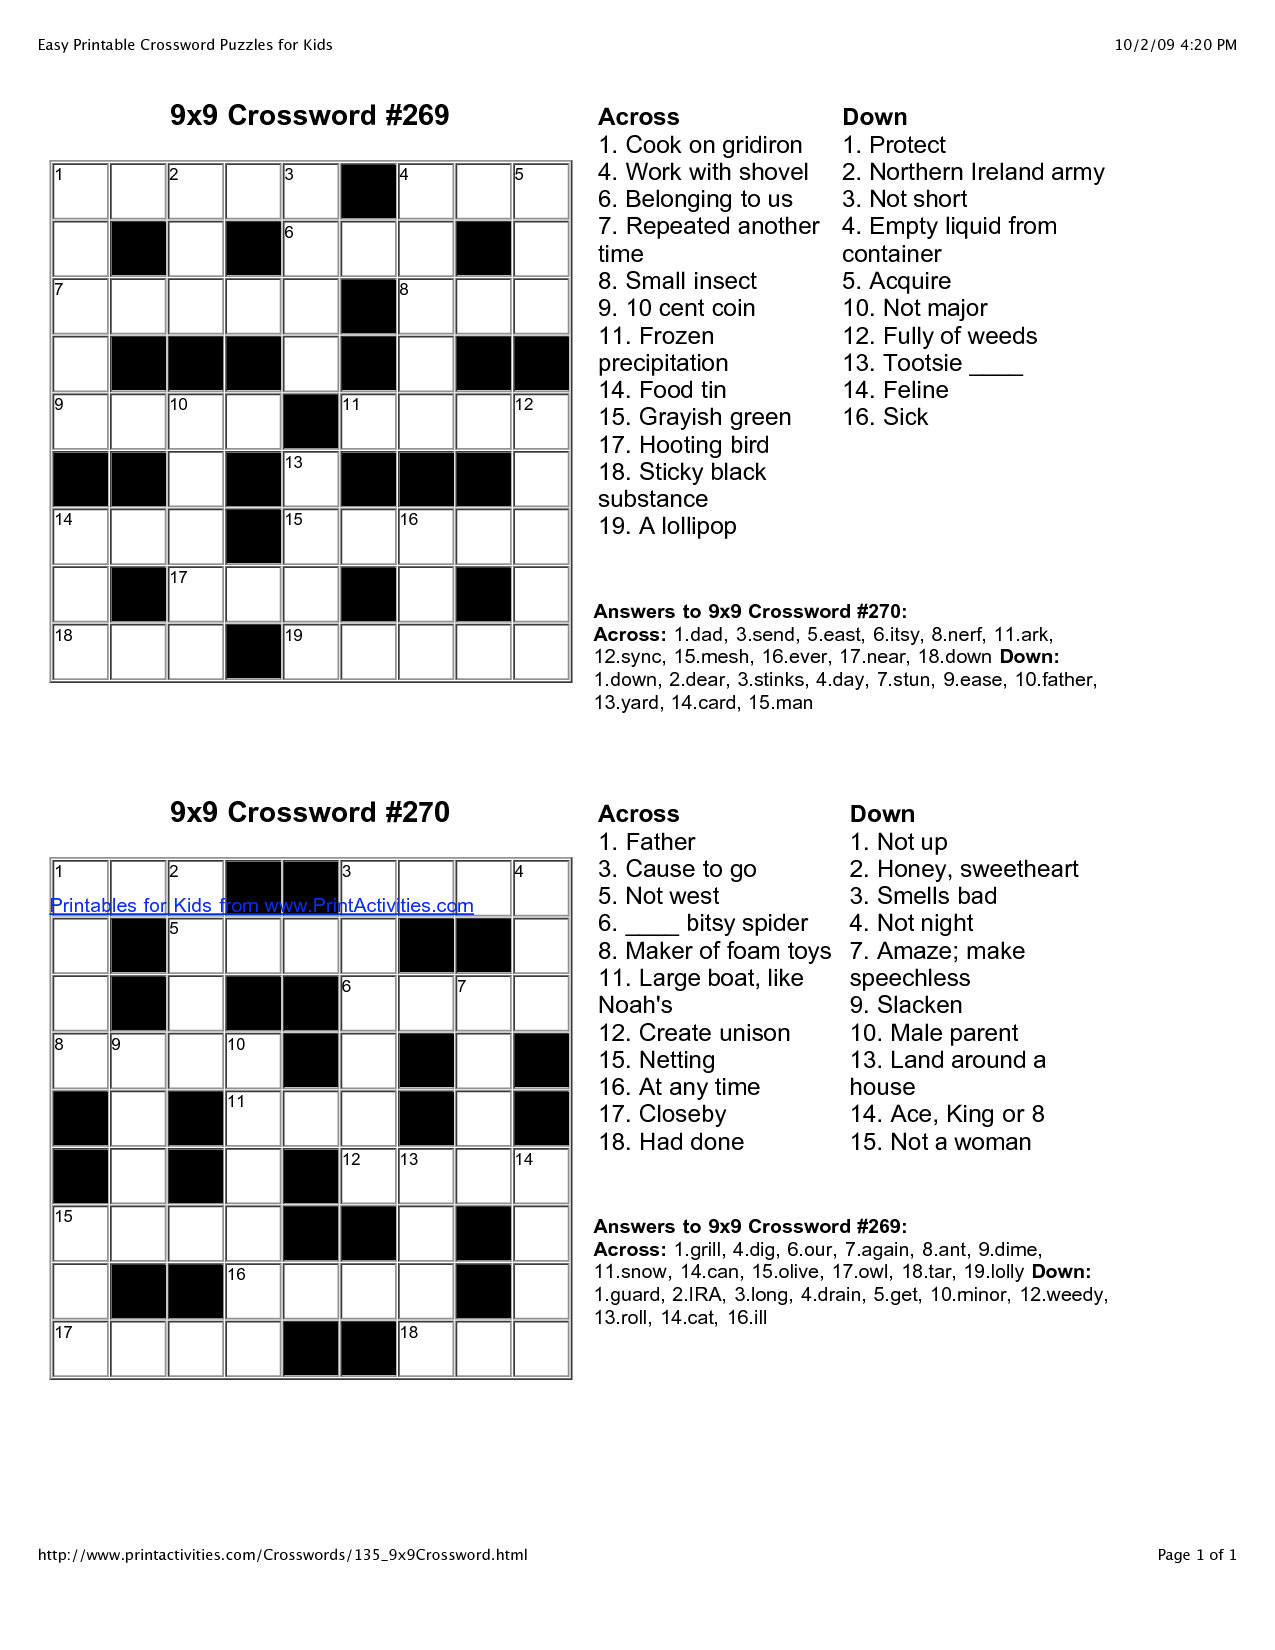 √ Printable English Crossword Puzzles With Answers - Printable Sports Crossword Puzzles With Answers